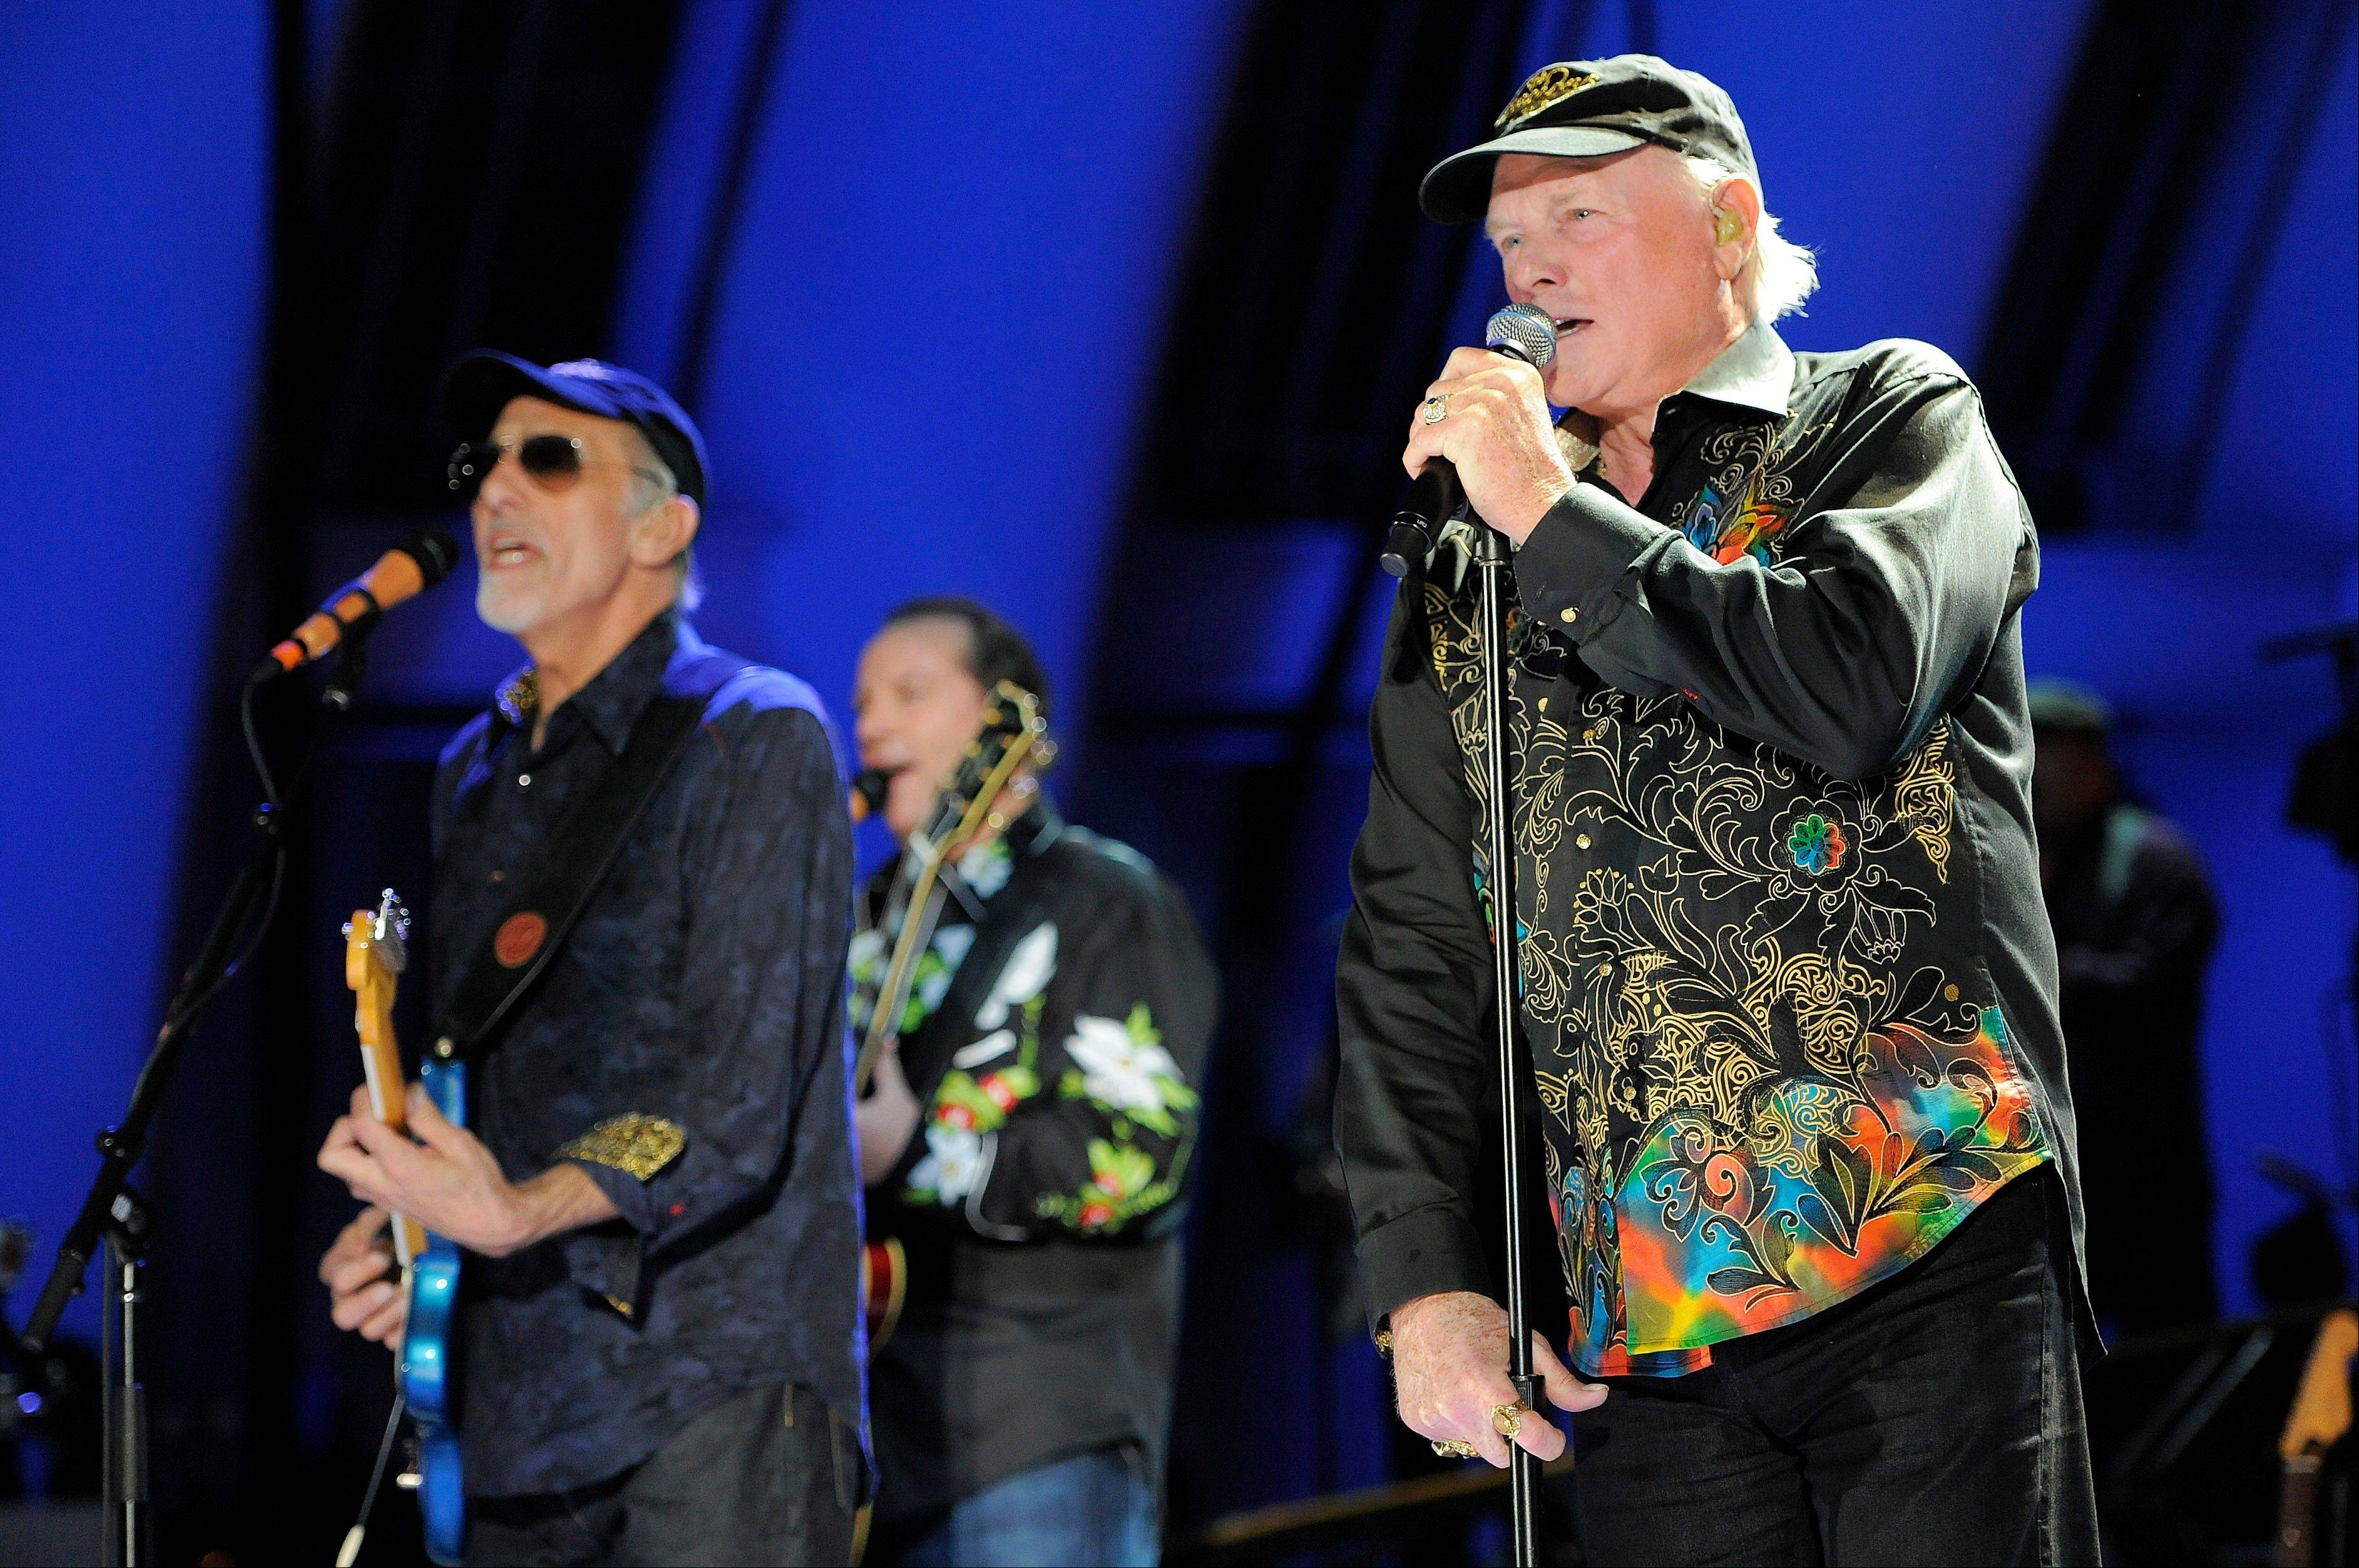 In this June 2, 2012 file photo, Mike Love, right, of The Beach Boys, performs alongside fellow band member David Marks at the Hollywood Bowl in Los Angeles. Brian Wilson says he felt blindsided by a news release from his Beach Boys bandmate Mike Love that ended the good vibrations on the band's 50th anniversary tour. Wilson says the expectation was that both sides would help craft and approve the news release. That didn't happen and now he thinks it's Love's turn to reach out.